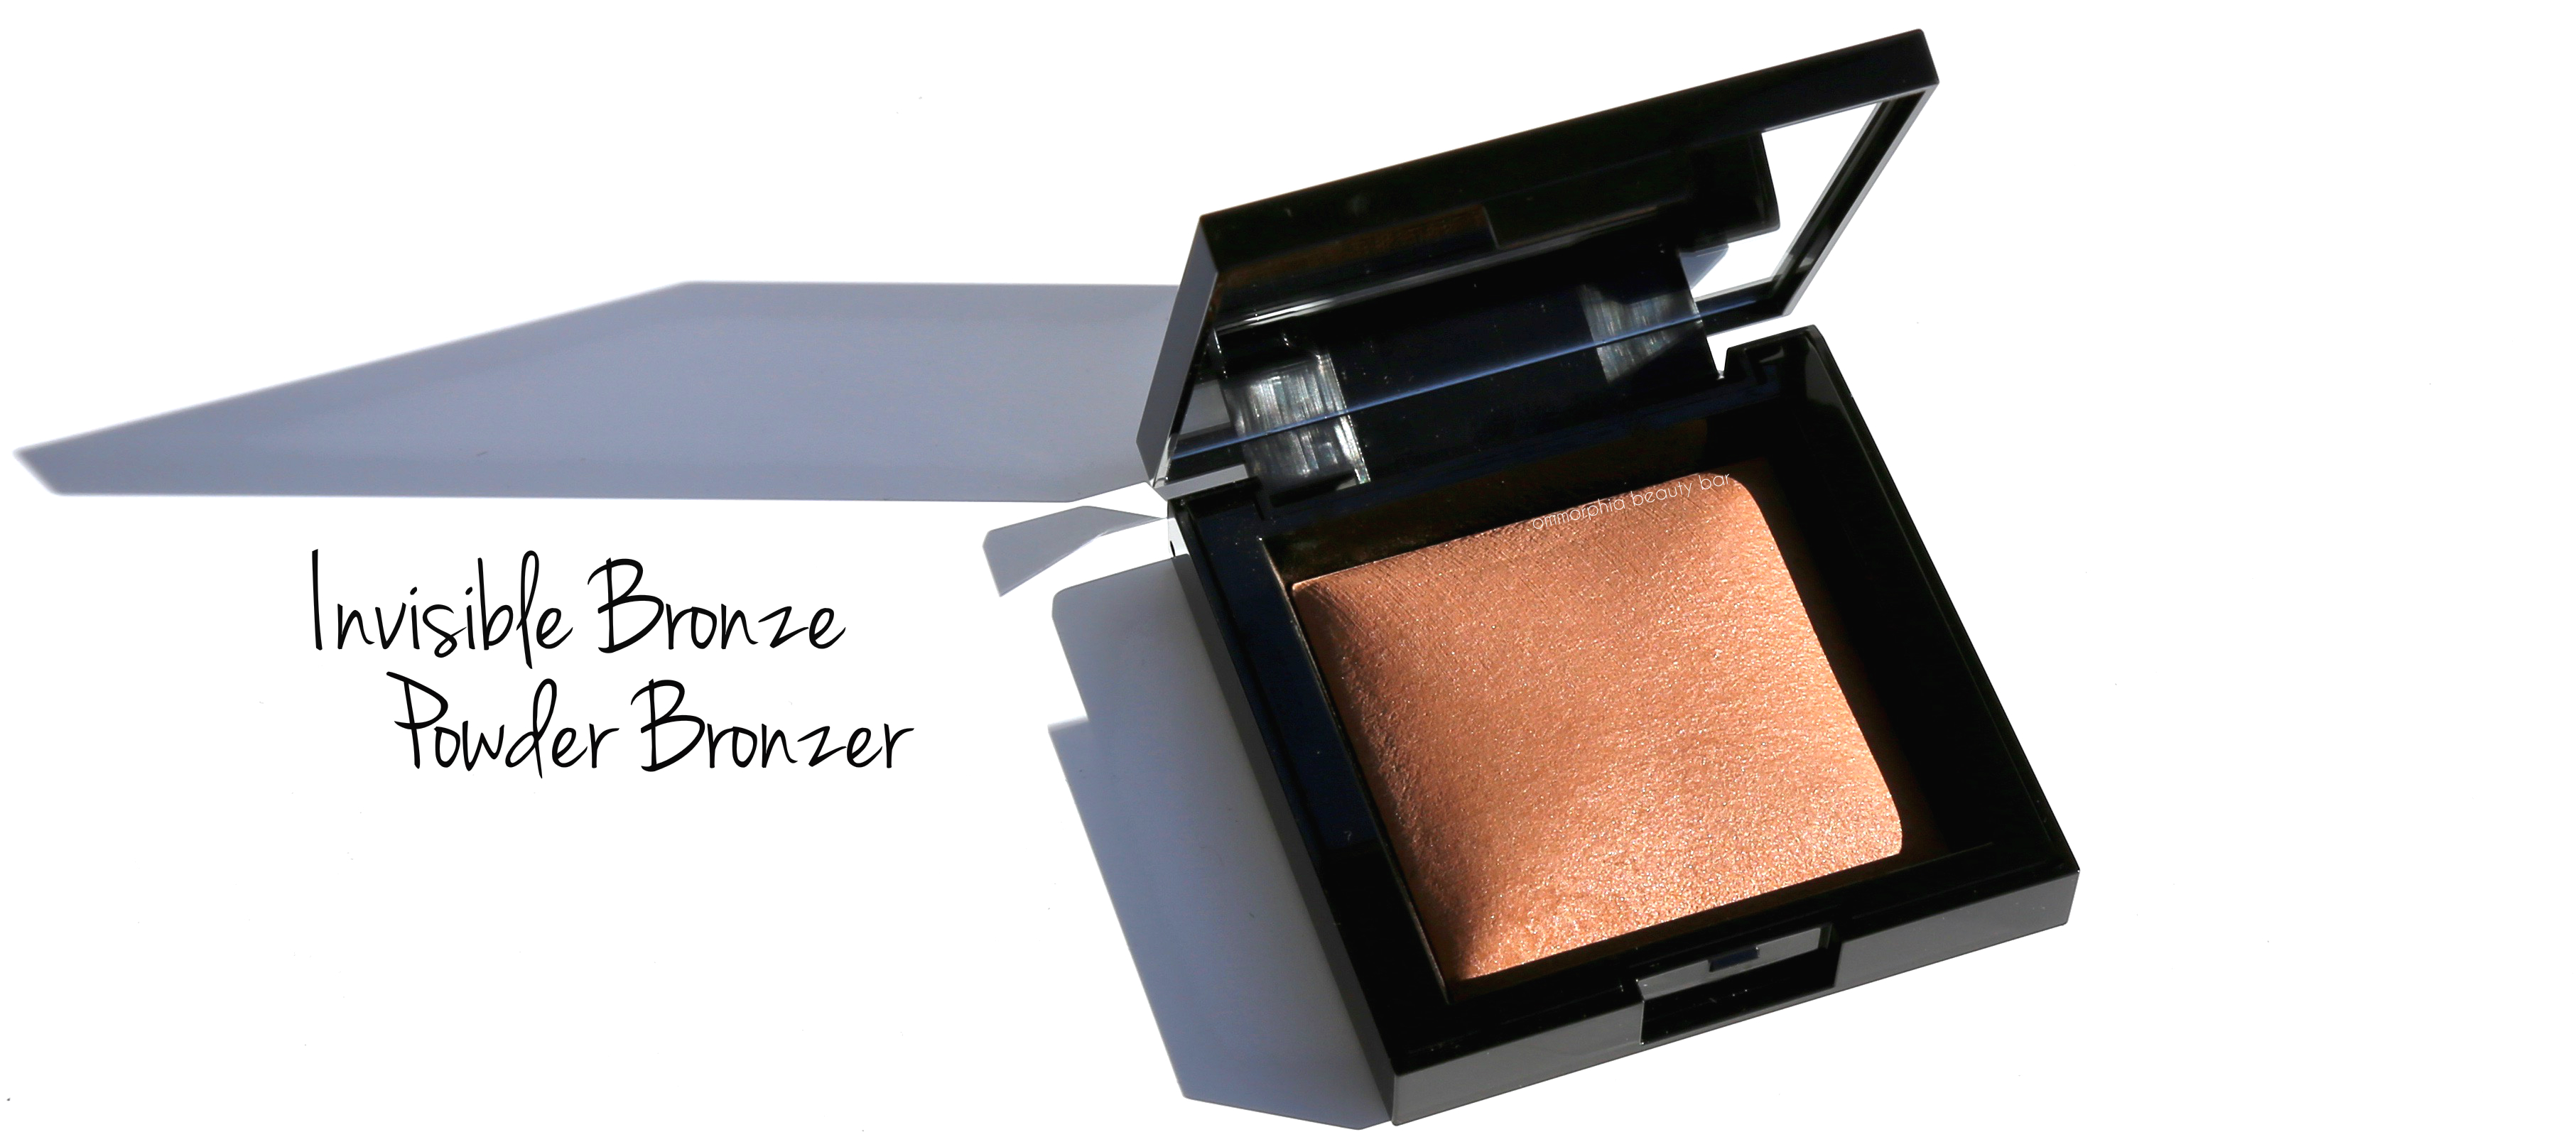 Invisible Bronze Powder Bronzer In Tan (can $3500)  Available In 4  Shades, The Formula Of These Bronzers Includes Mineral Pigments For  Staytrue Colour,